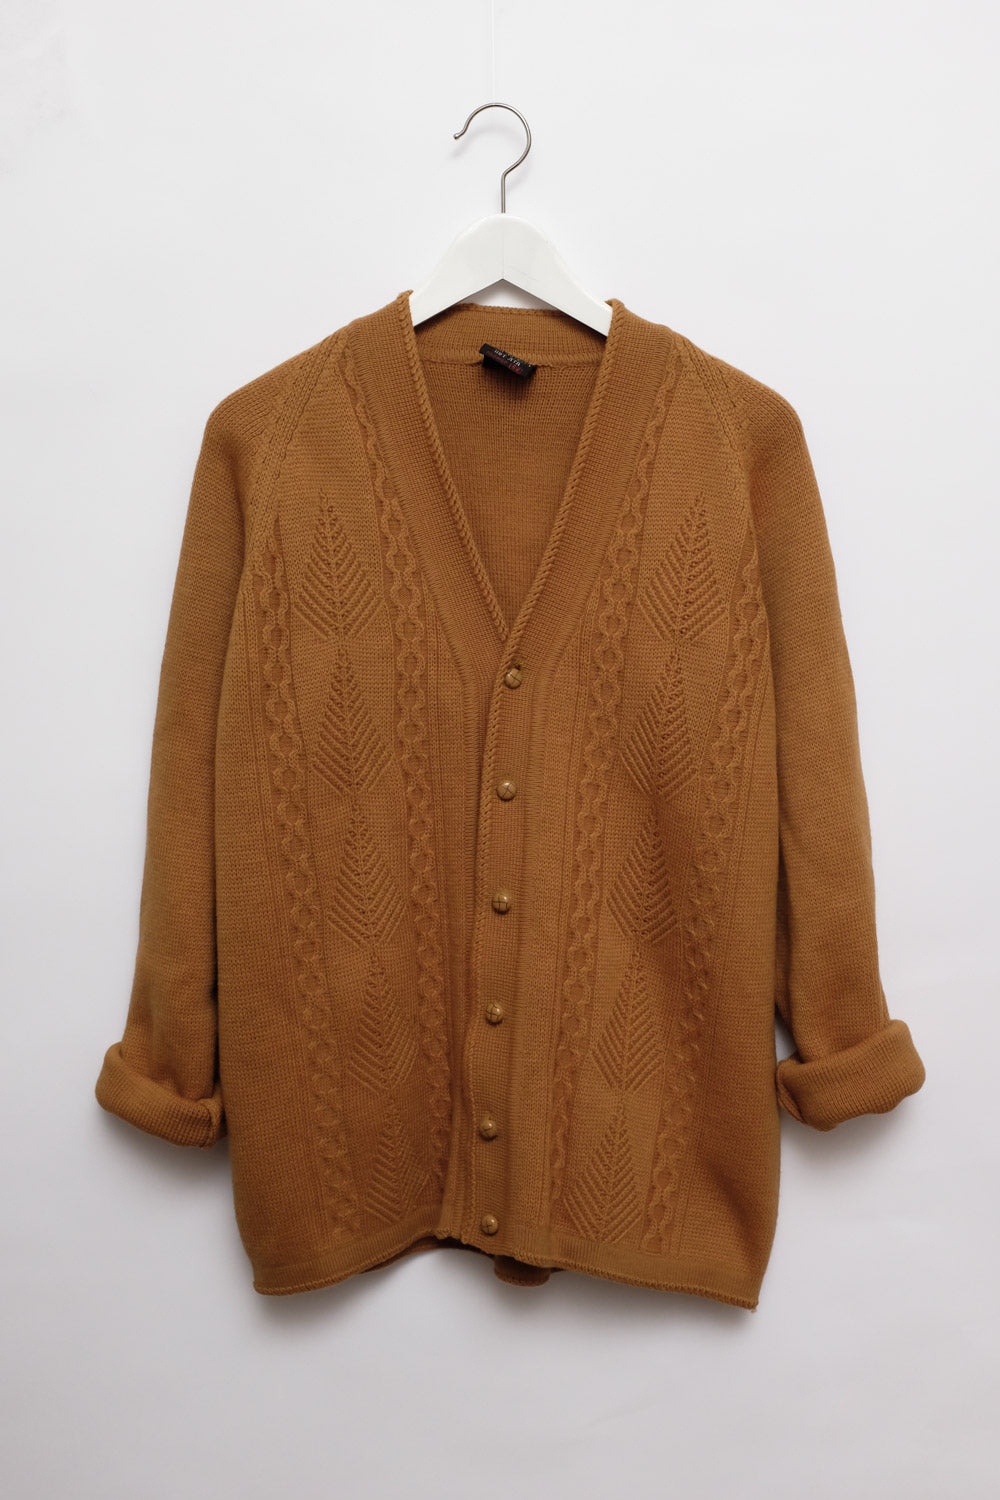 0017_CAMEL WOOL CHUNKY CABLE KNIT CARDIGAN